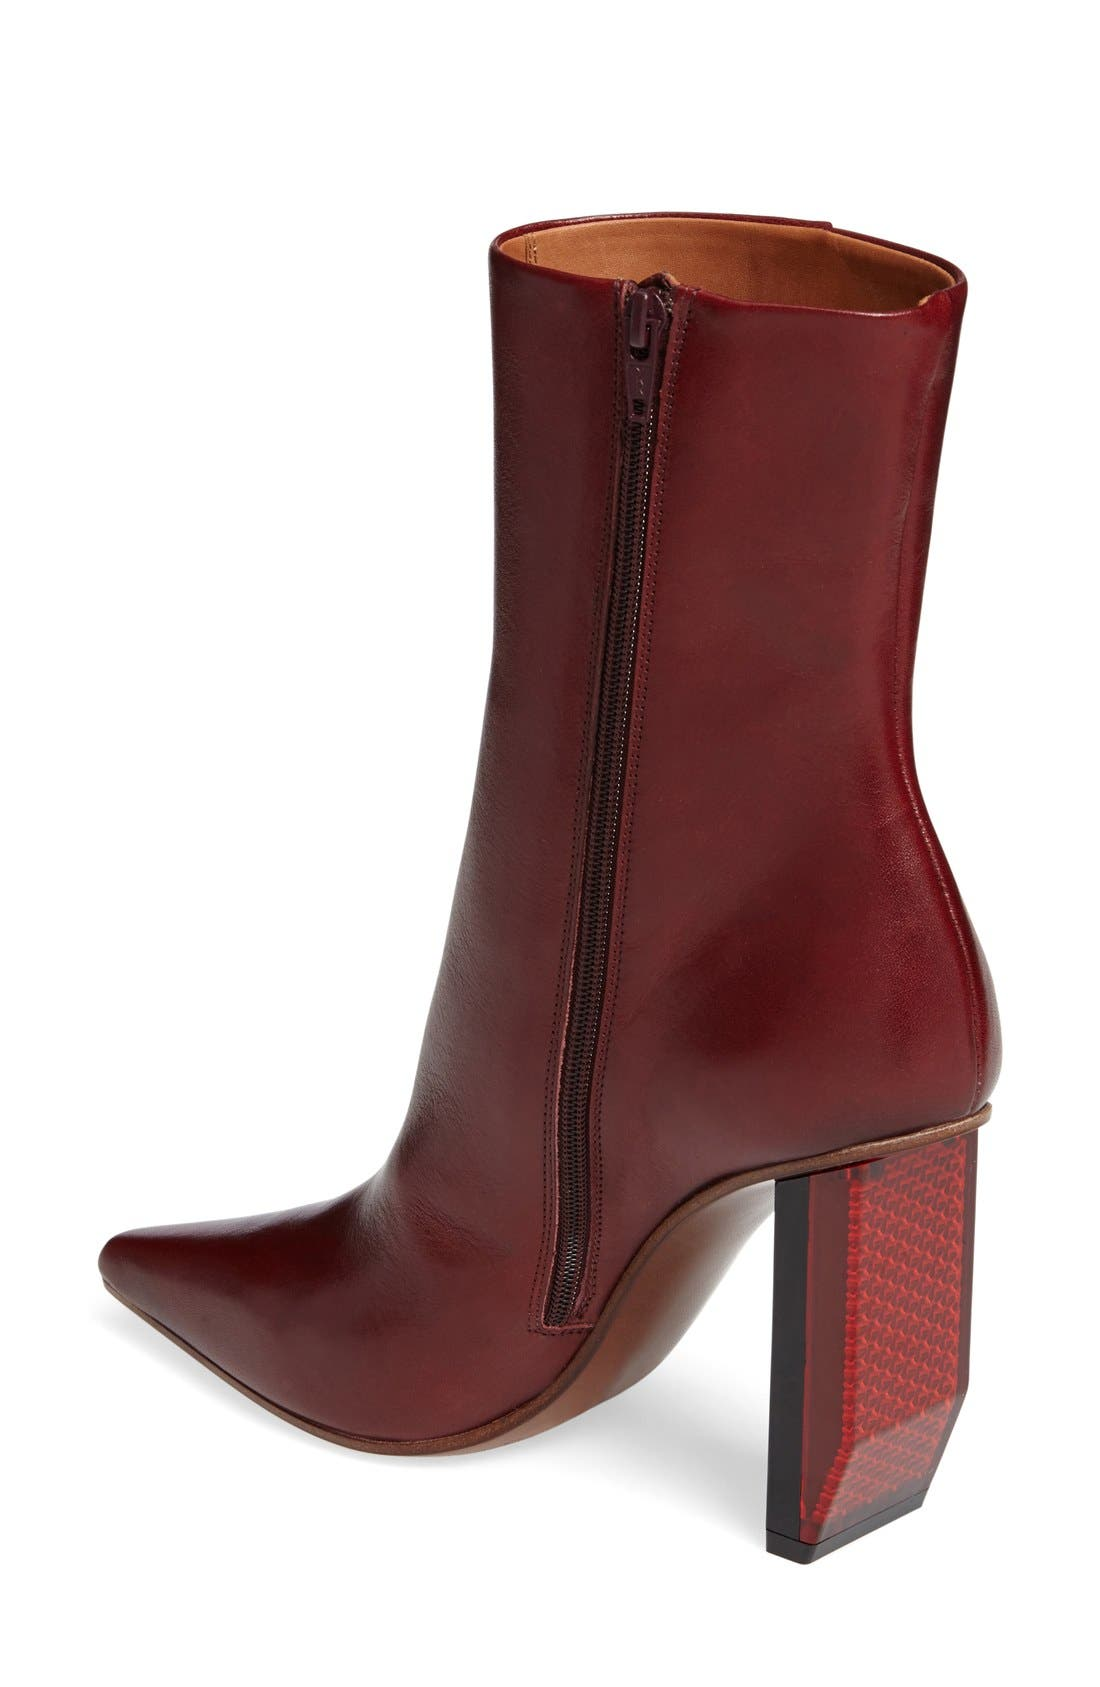 Reflector Heel Ankle Boot,                             Alternate thumbnail 2, color,                             930